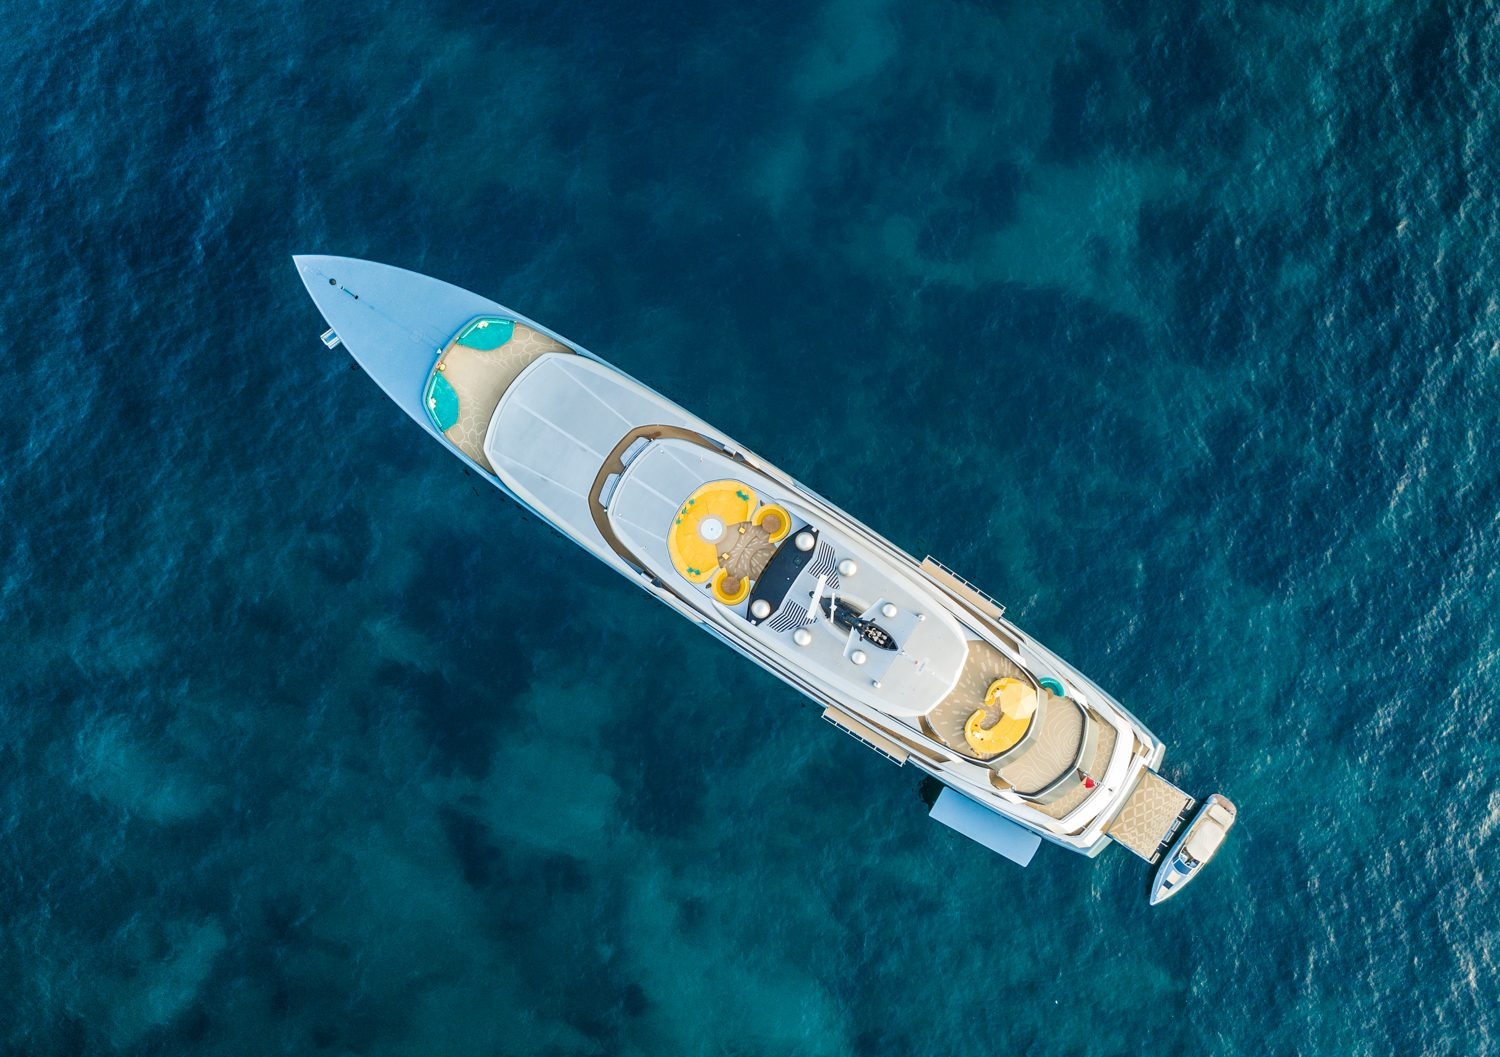 Superyachts for Sale | Luxury Yachts for Sale | Verpeka Dolling